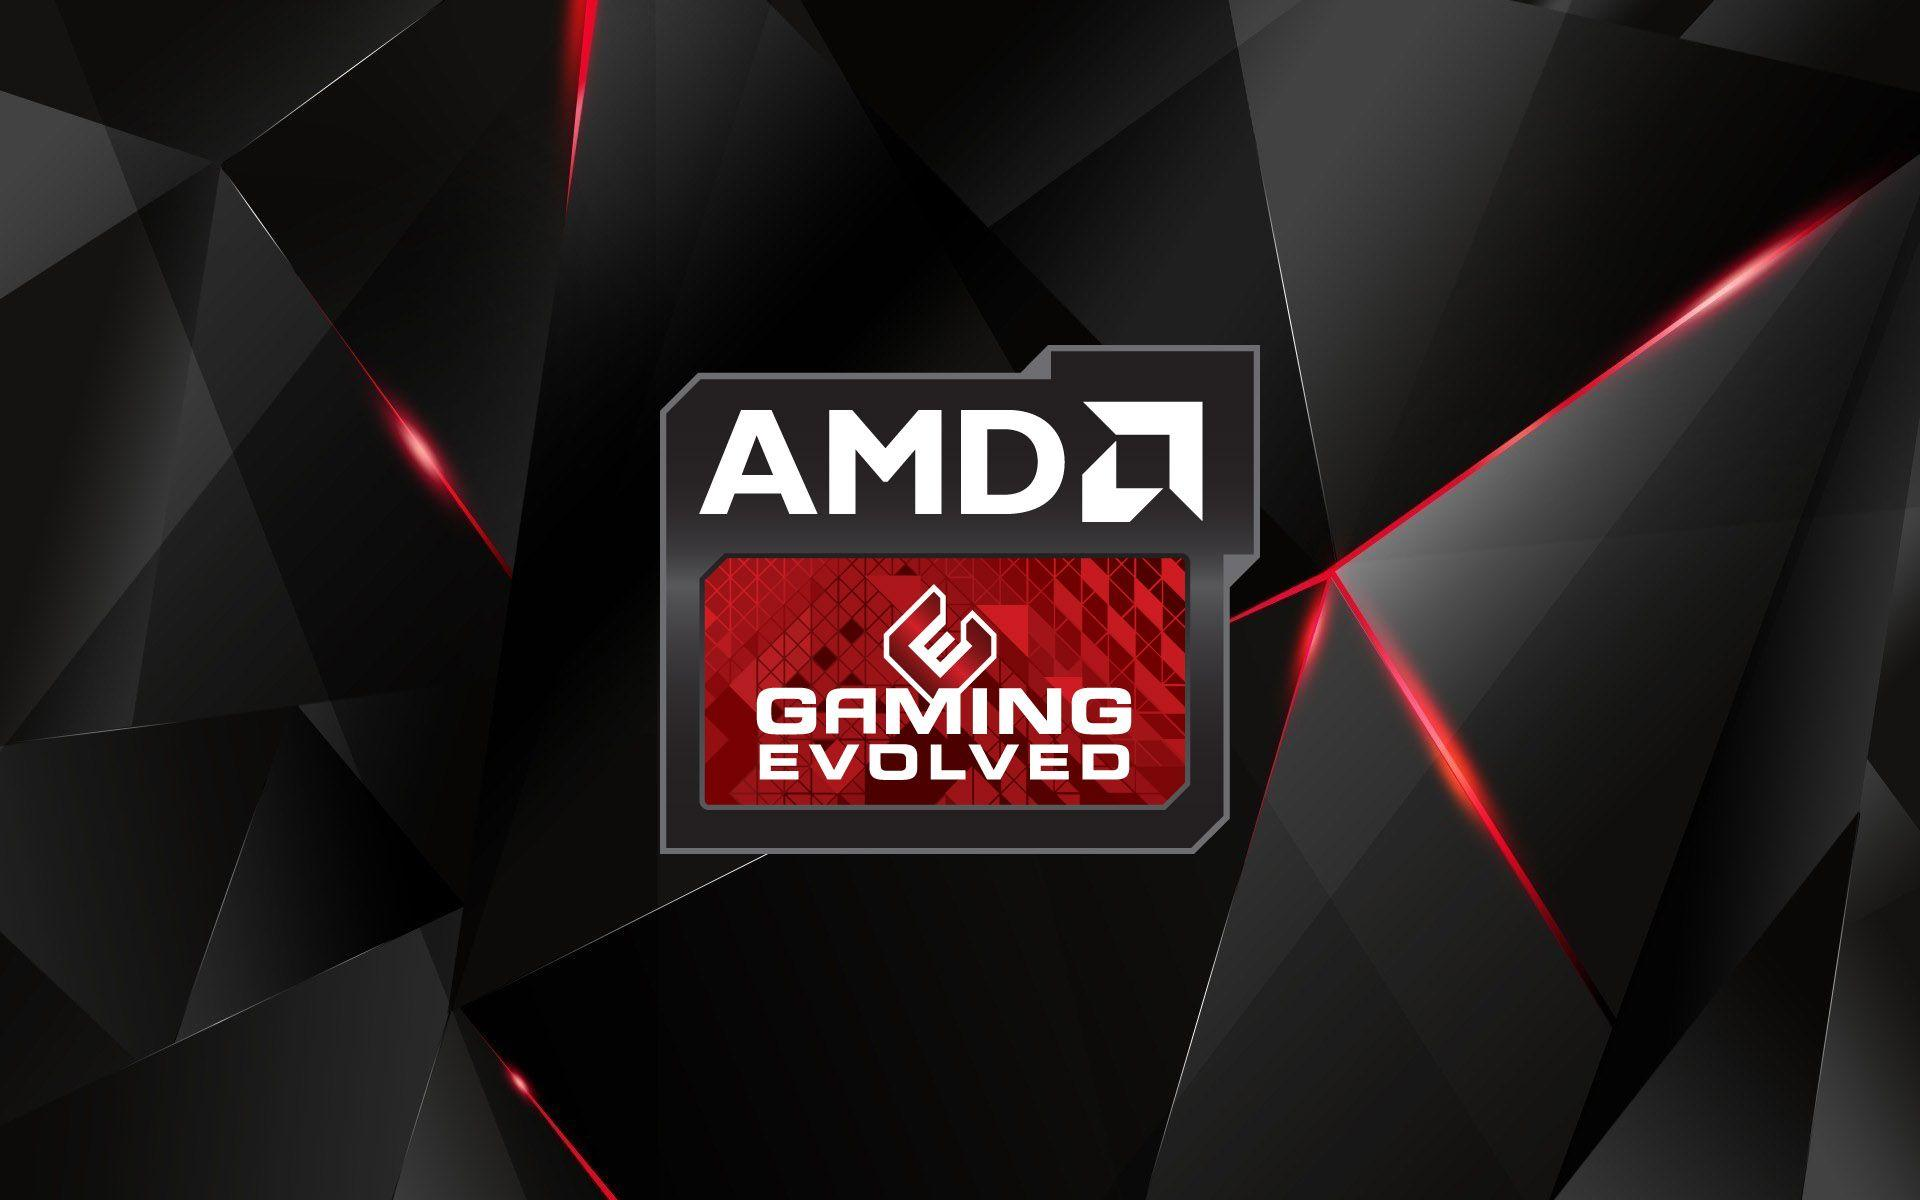 amd fx background by - photo #35